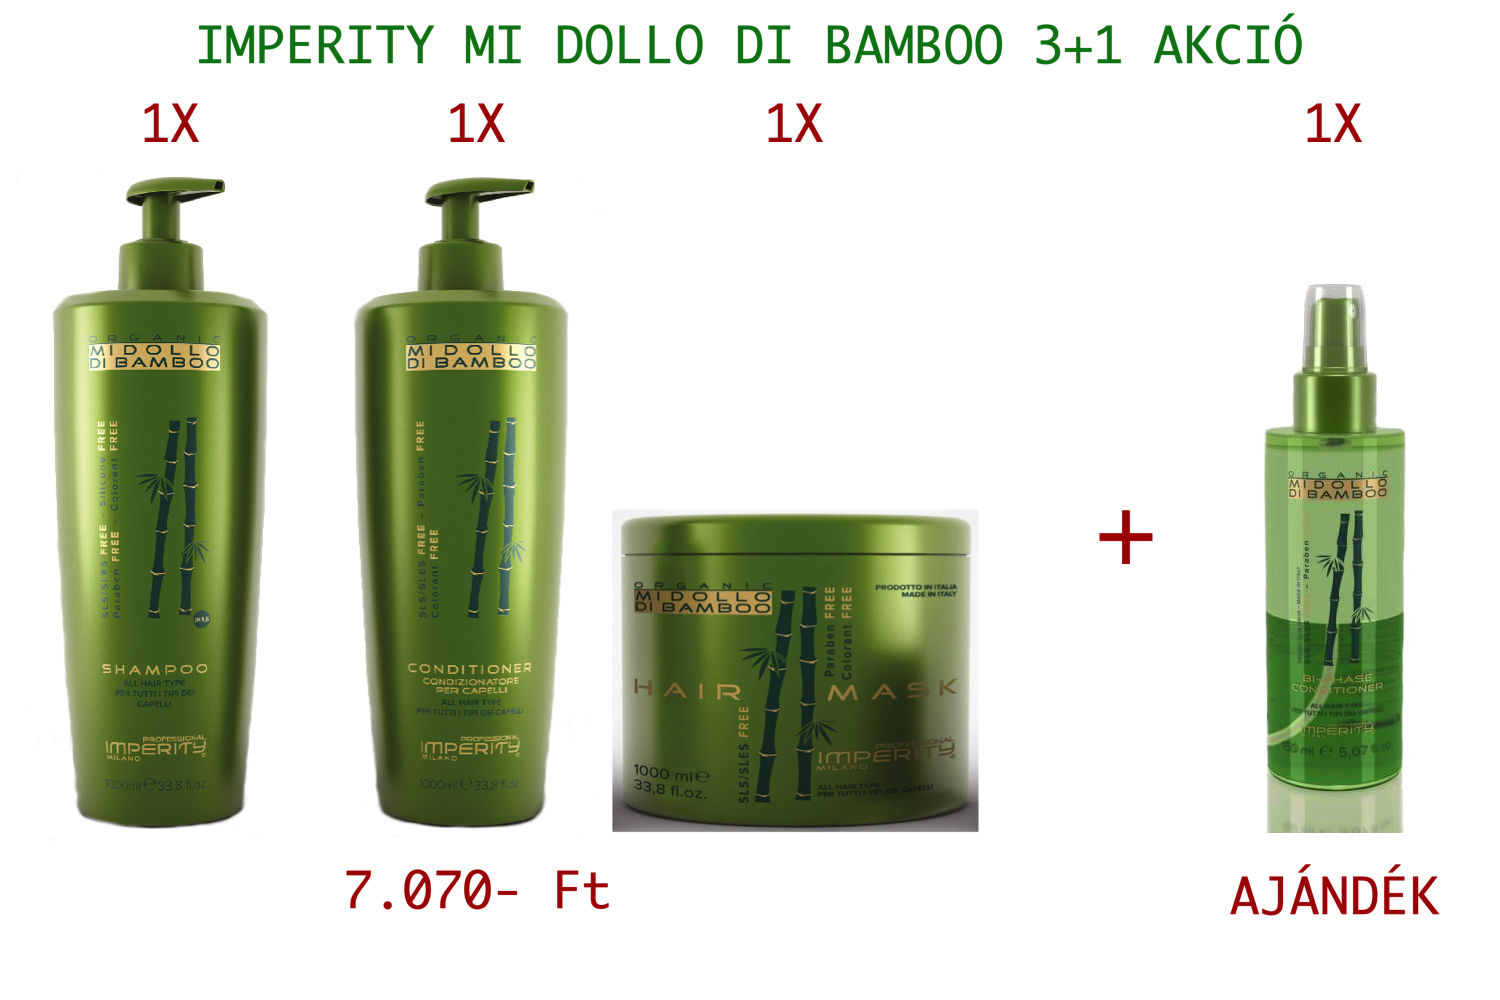 IMPERITY MI DOLLO DI BAMBOO 3 + 1 AKCIÓ